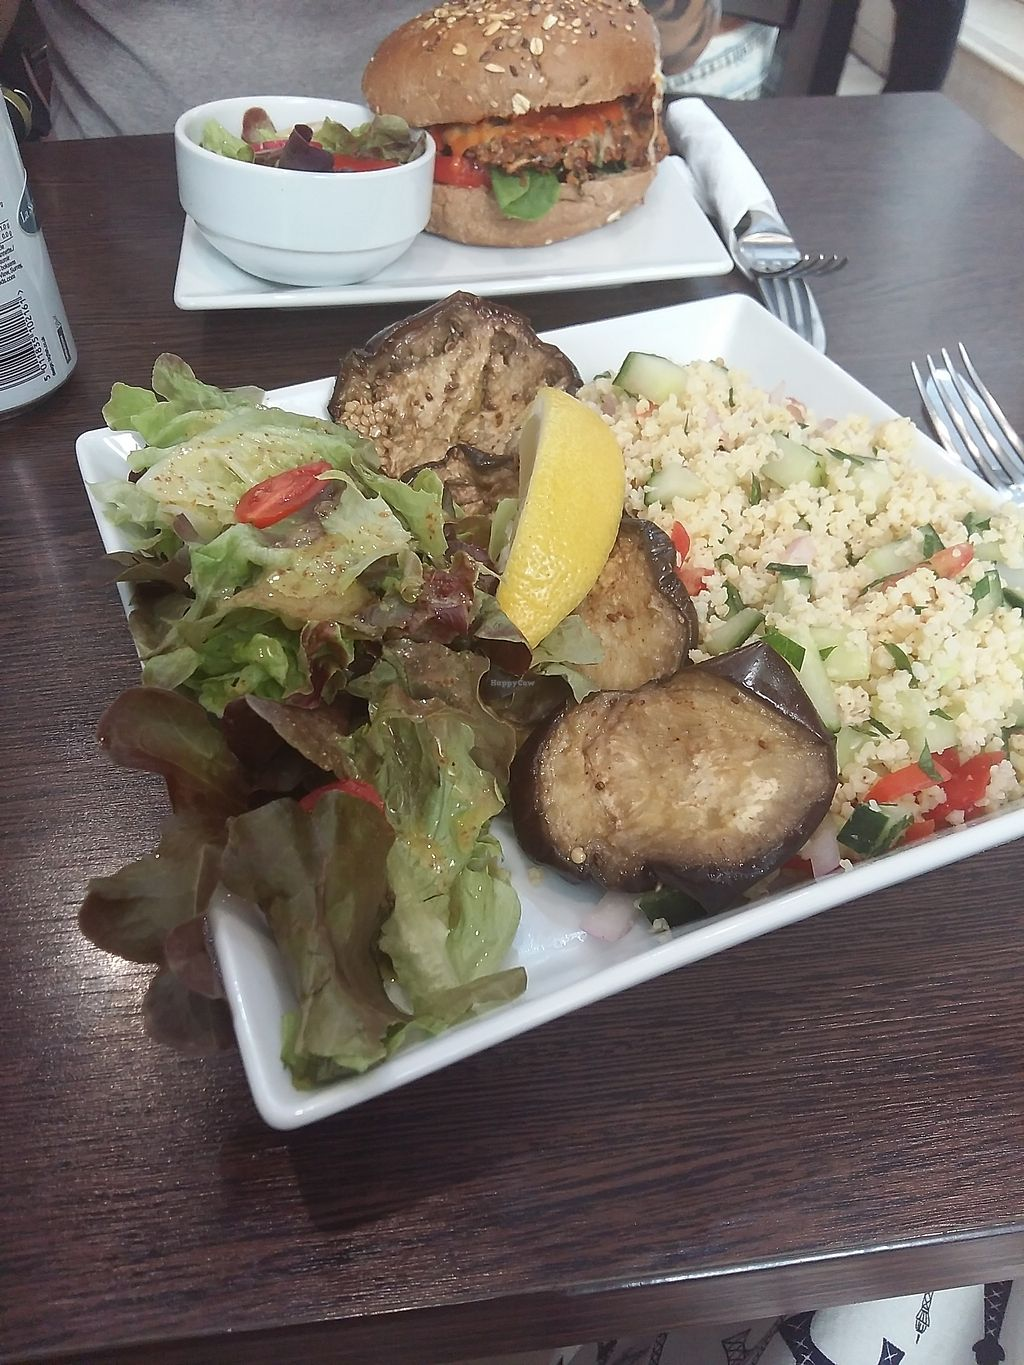 """Photo of CLOSED: The Grassy Hopper   by <a href=""""/members/profile/ninaframbuesa"""">ninaframbuesa</a> <br/>The eggplant was great, but this has nothing to do with tabbouleh <br/> August 5, 2017  - <a href='/contact/abuse/image/59283/289217'>Report</a>"""